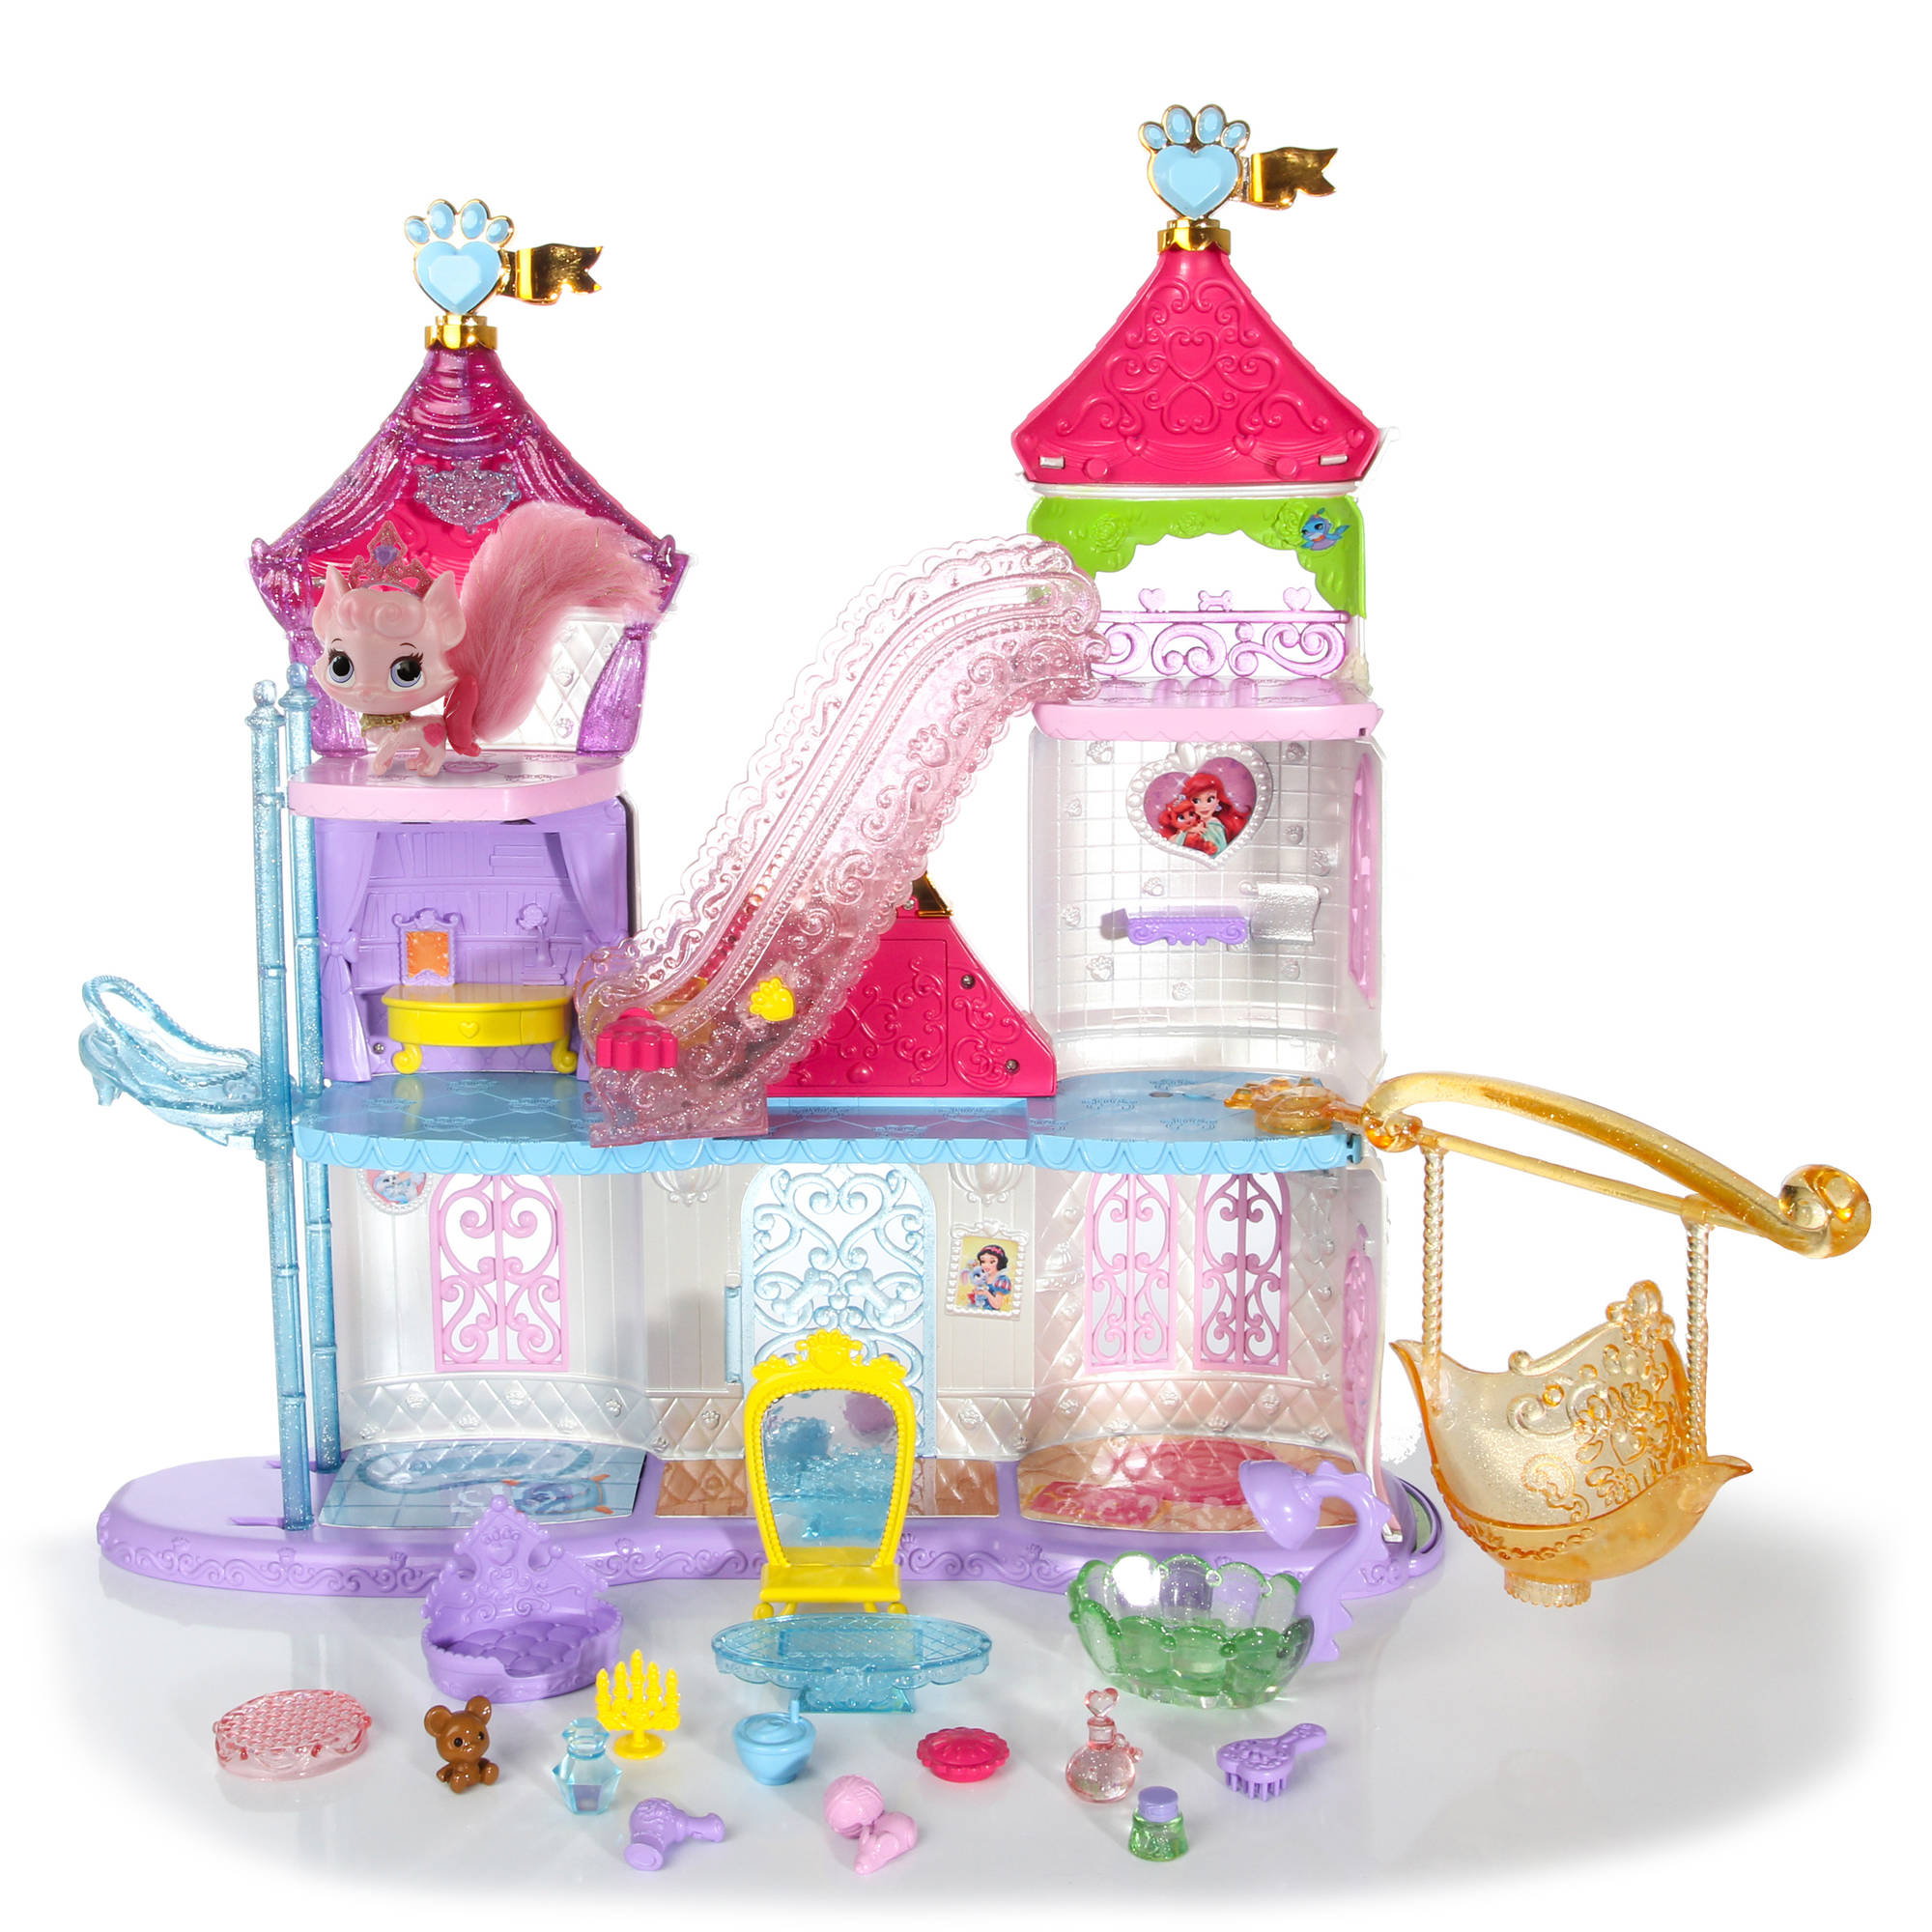 Dollhouses & Play Sets Walmart